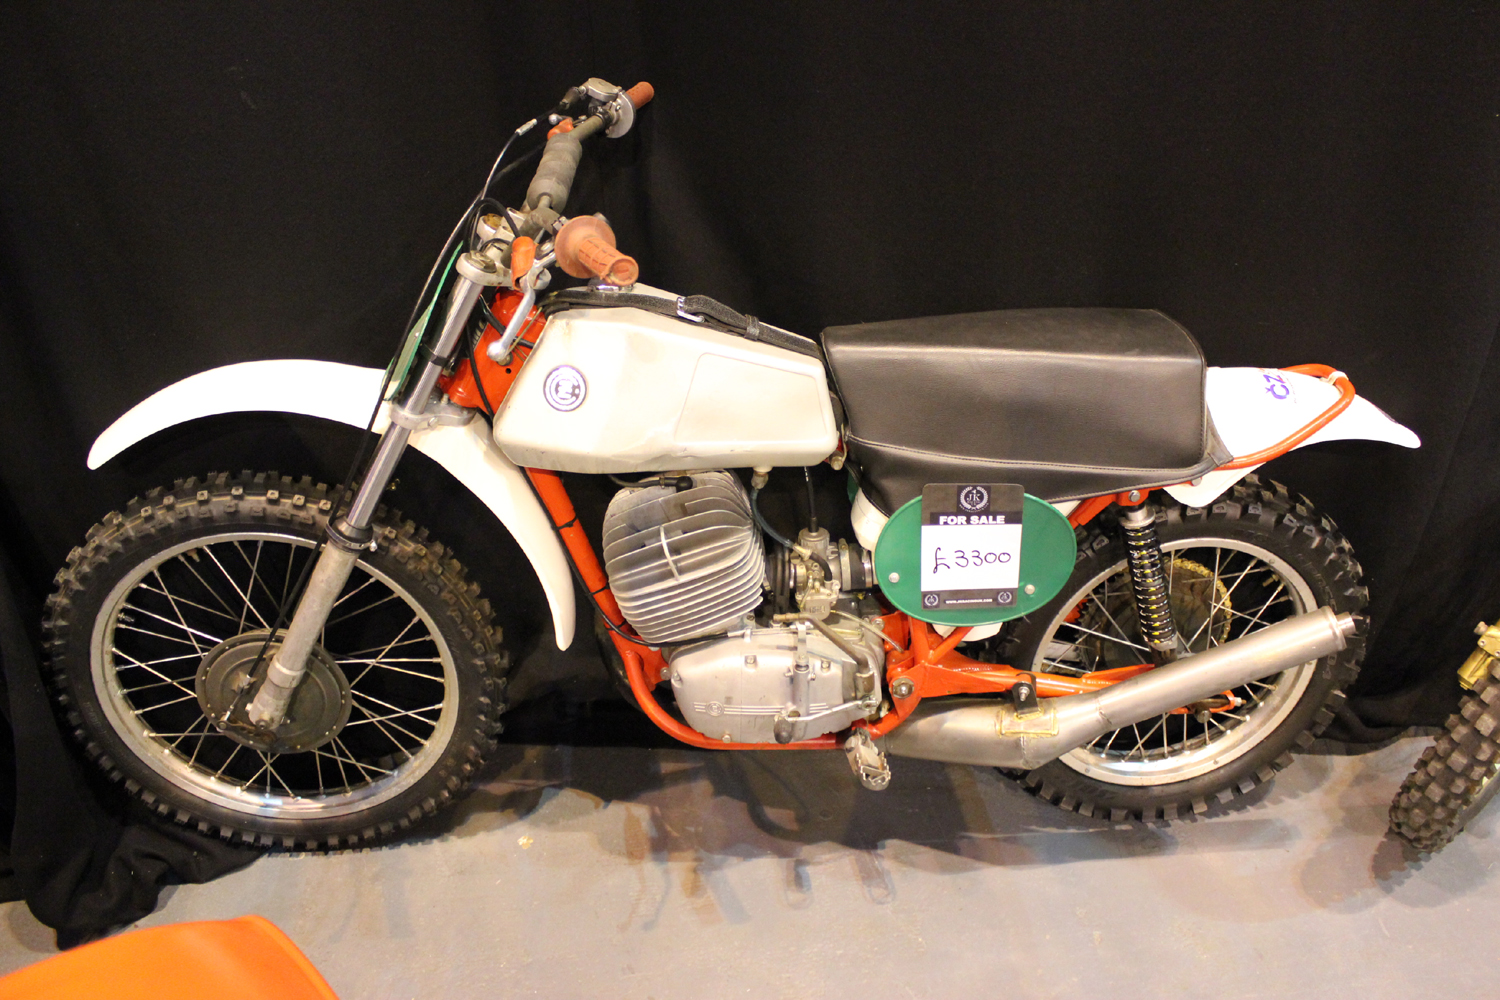 classicdirtbikerider.com-photo by Mr J-2015 Telford classic dirt bike show-CLASSIC CZ SCRAMBLER...